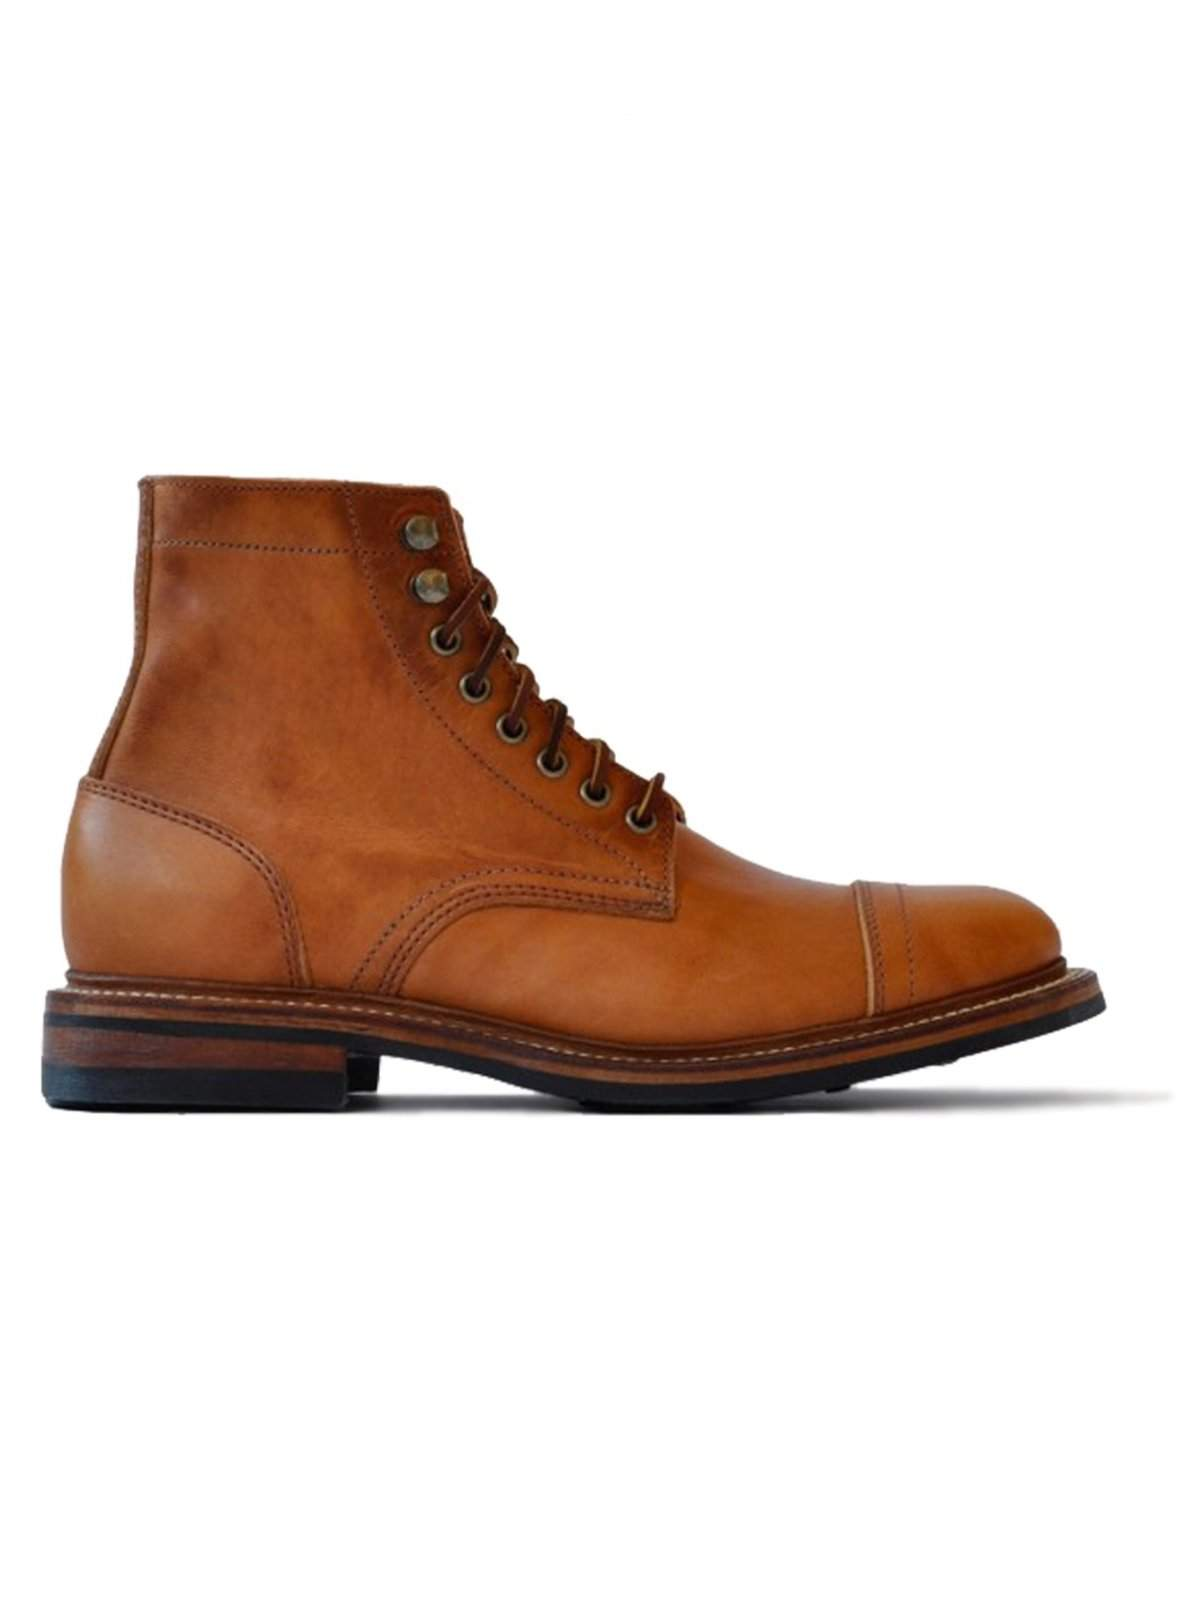 Oakstreet Bootmakers English Tan Dublin Captoe Dainite Trench Boot - MORE by Morello Indonesia